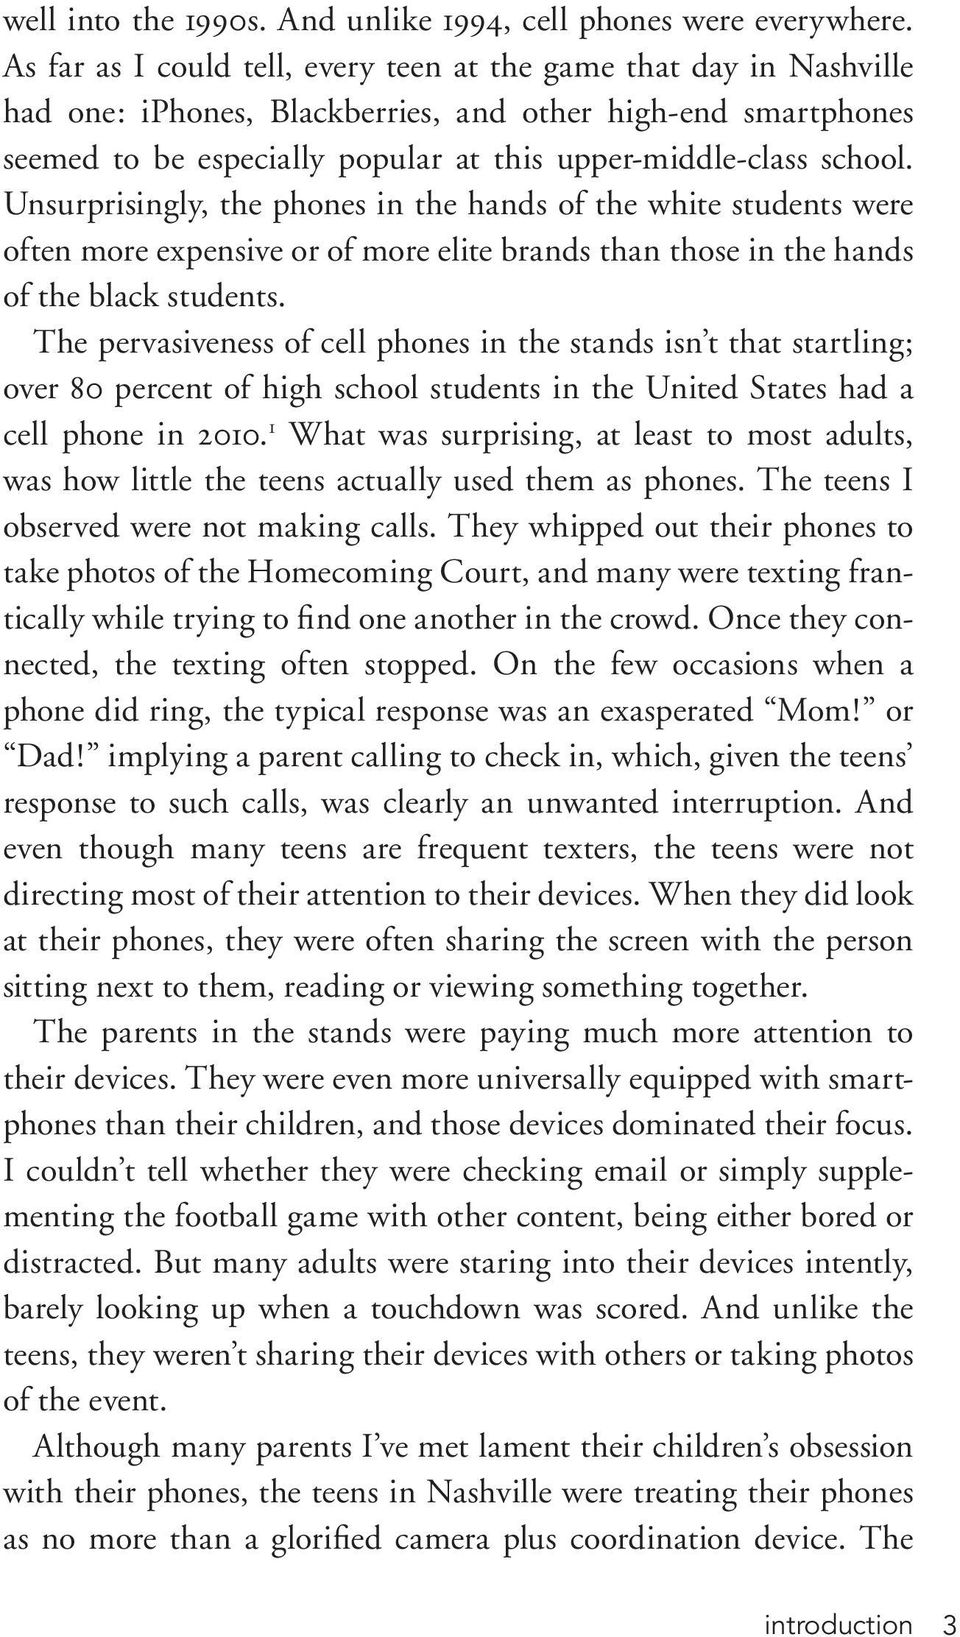 school. Unsurprisingly, the phones in the hands of the white students were often more expensive or of more elite brands than those in the hands of the black students.